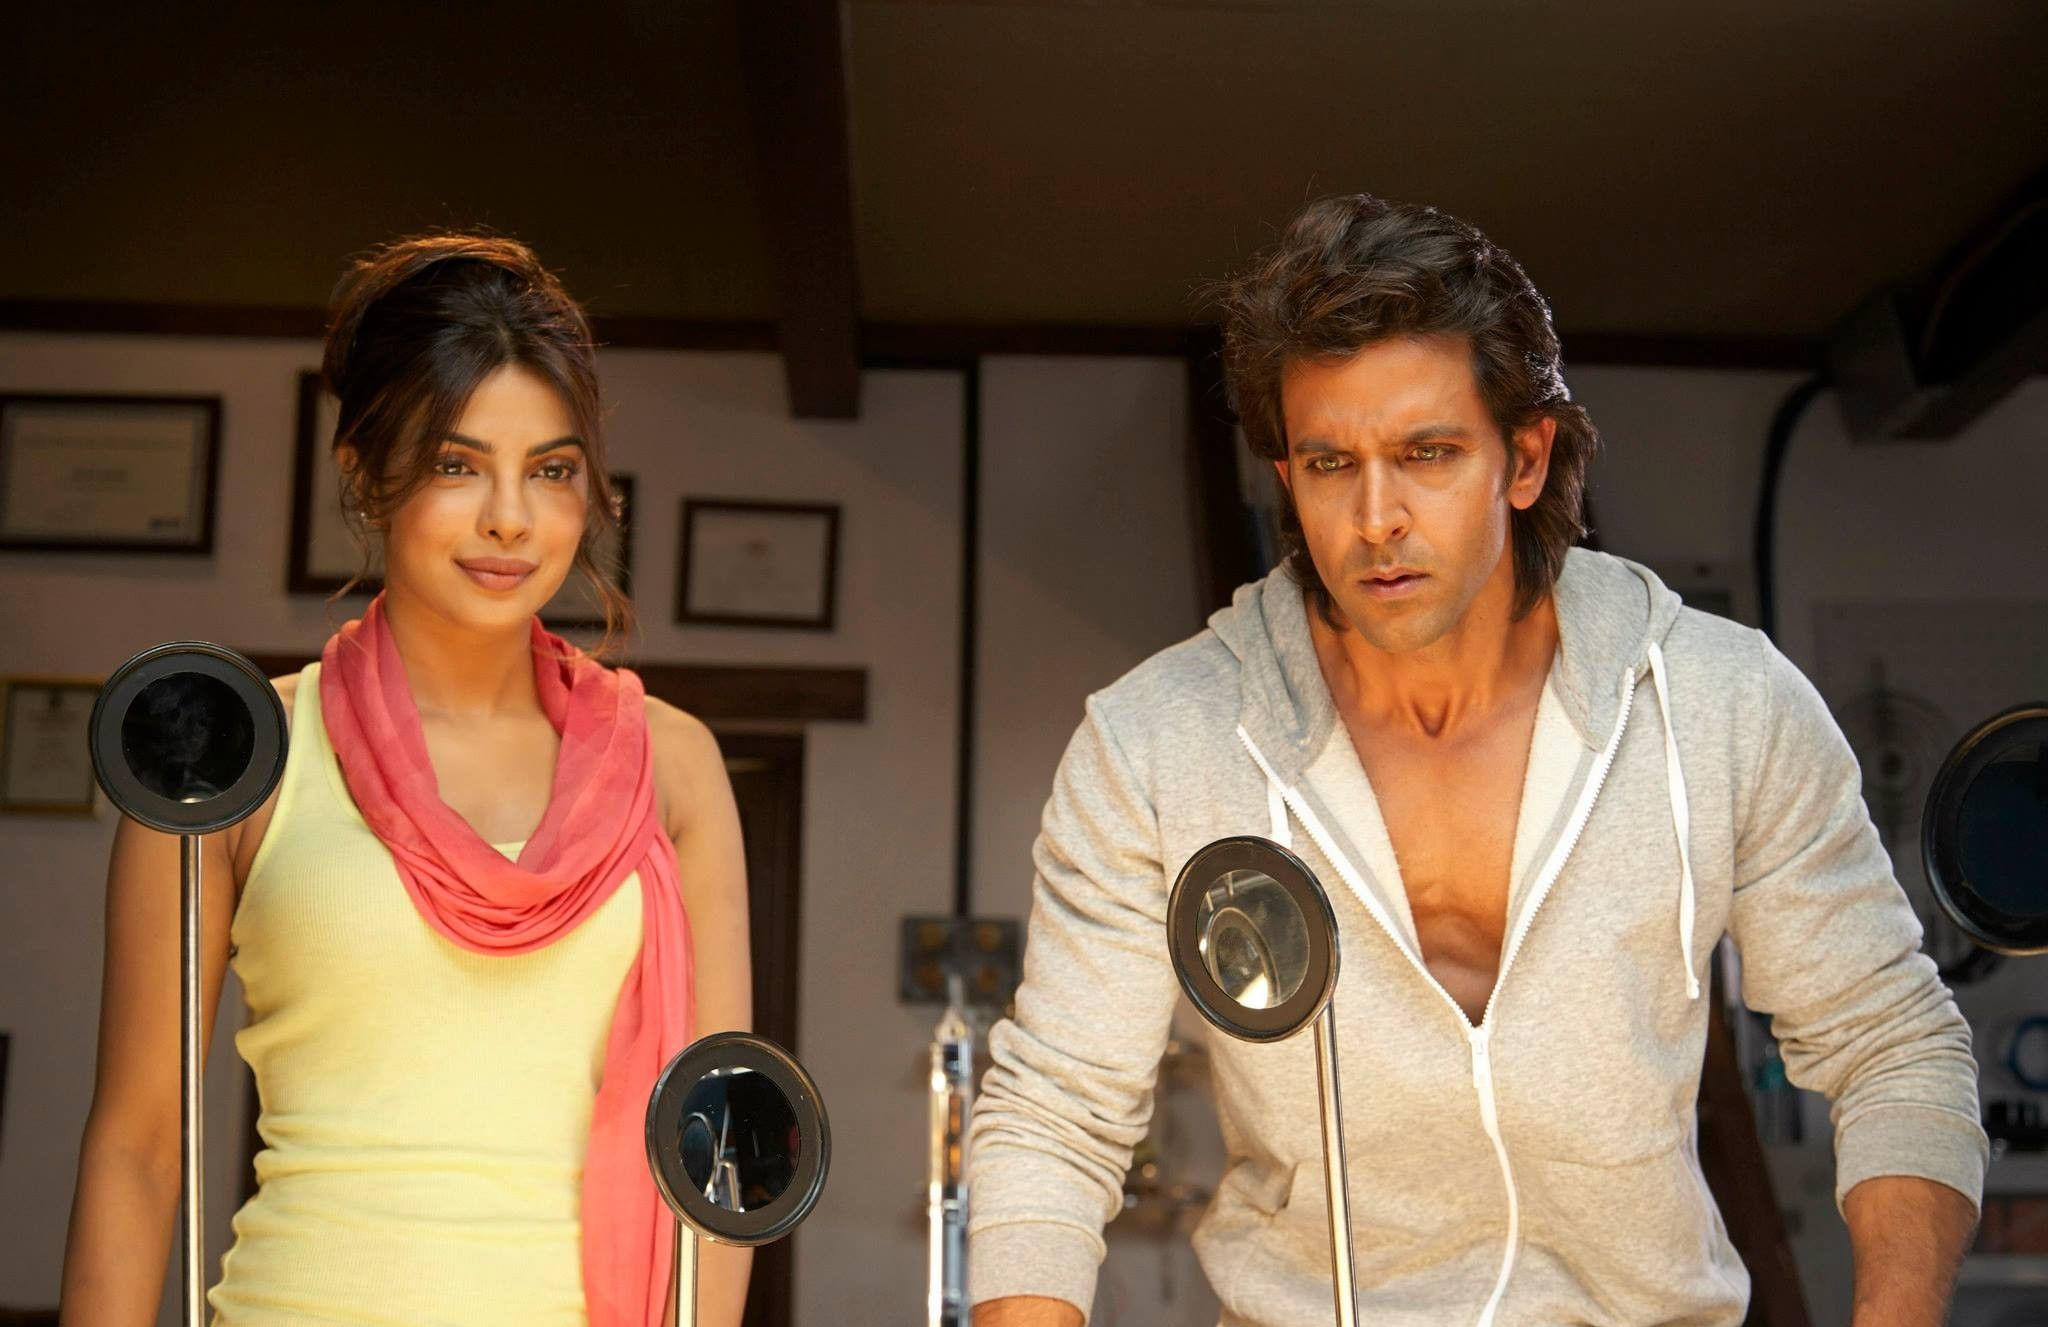 hrithik roshan and priyanka chopra in movie krrish 3 hd - HD 2048×1327